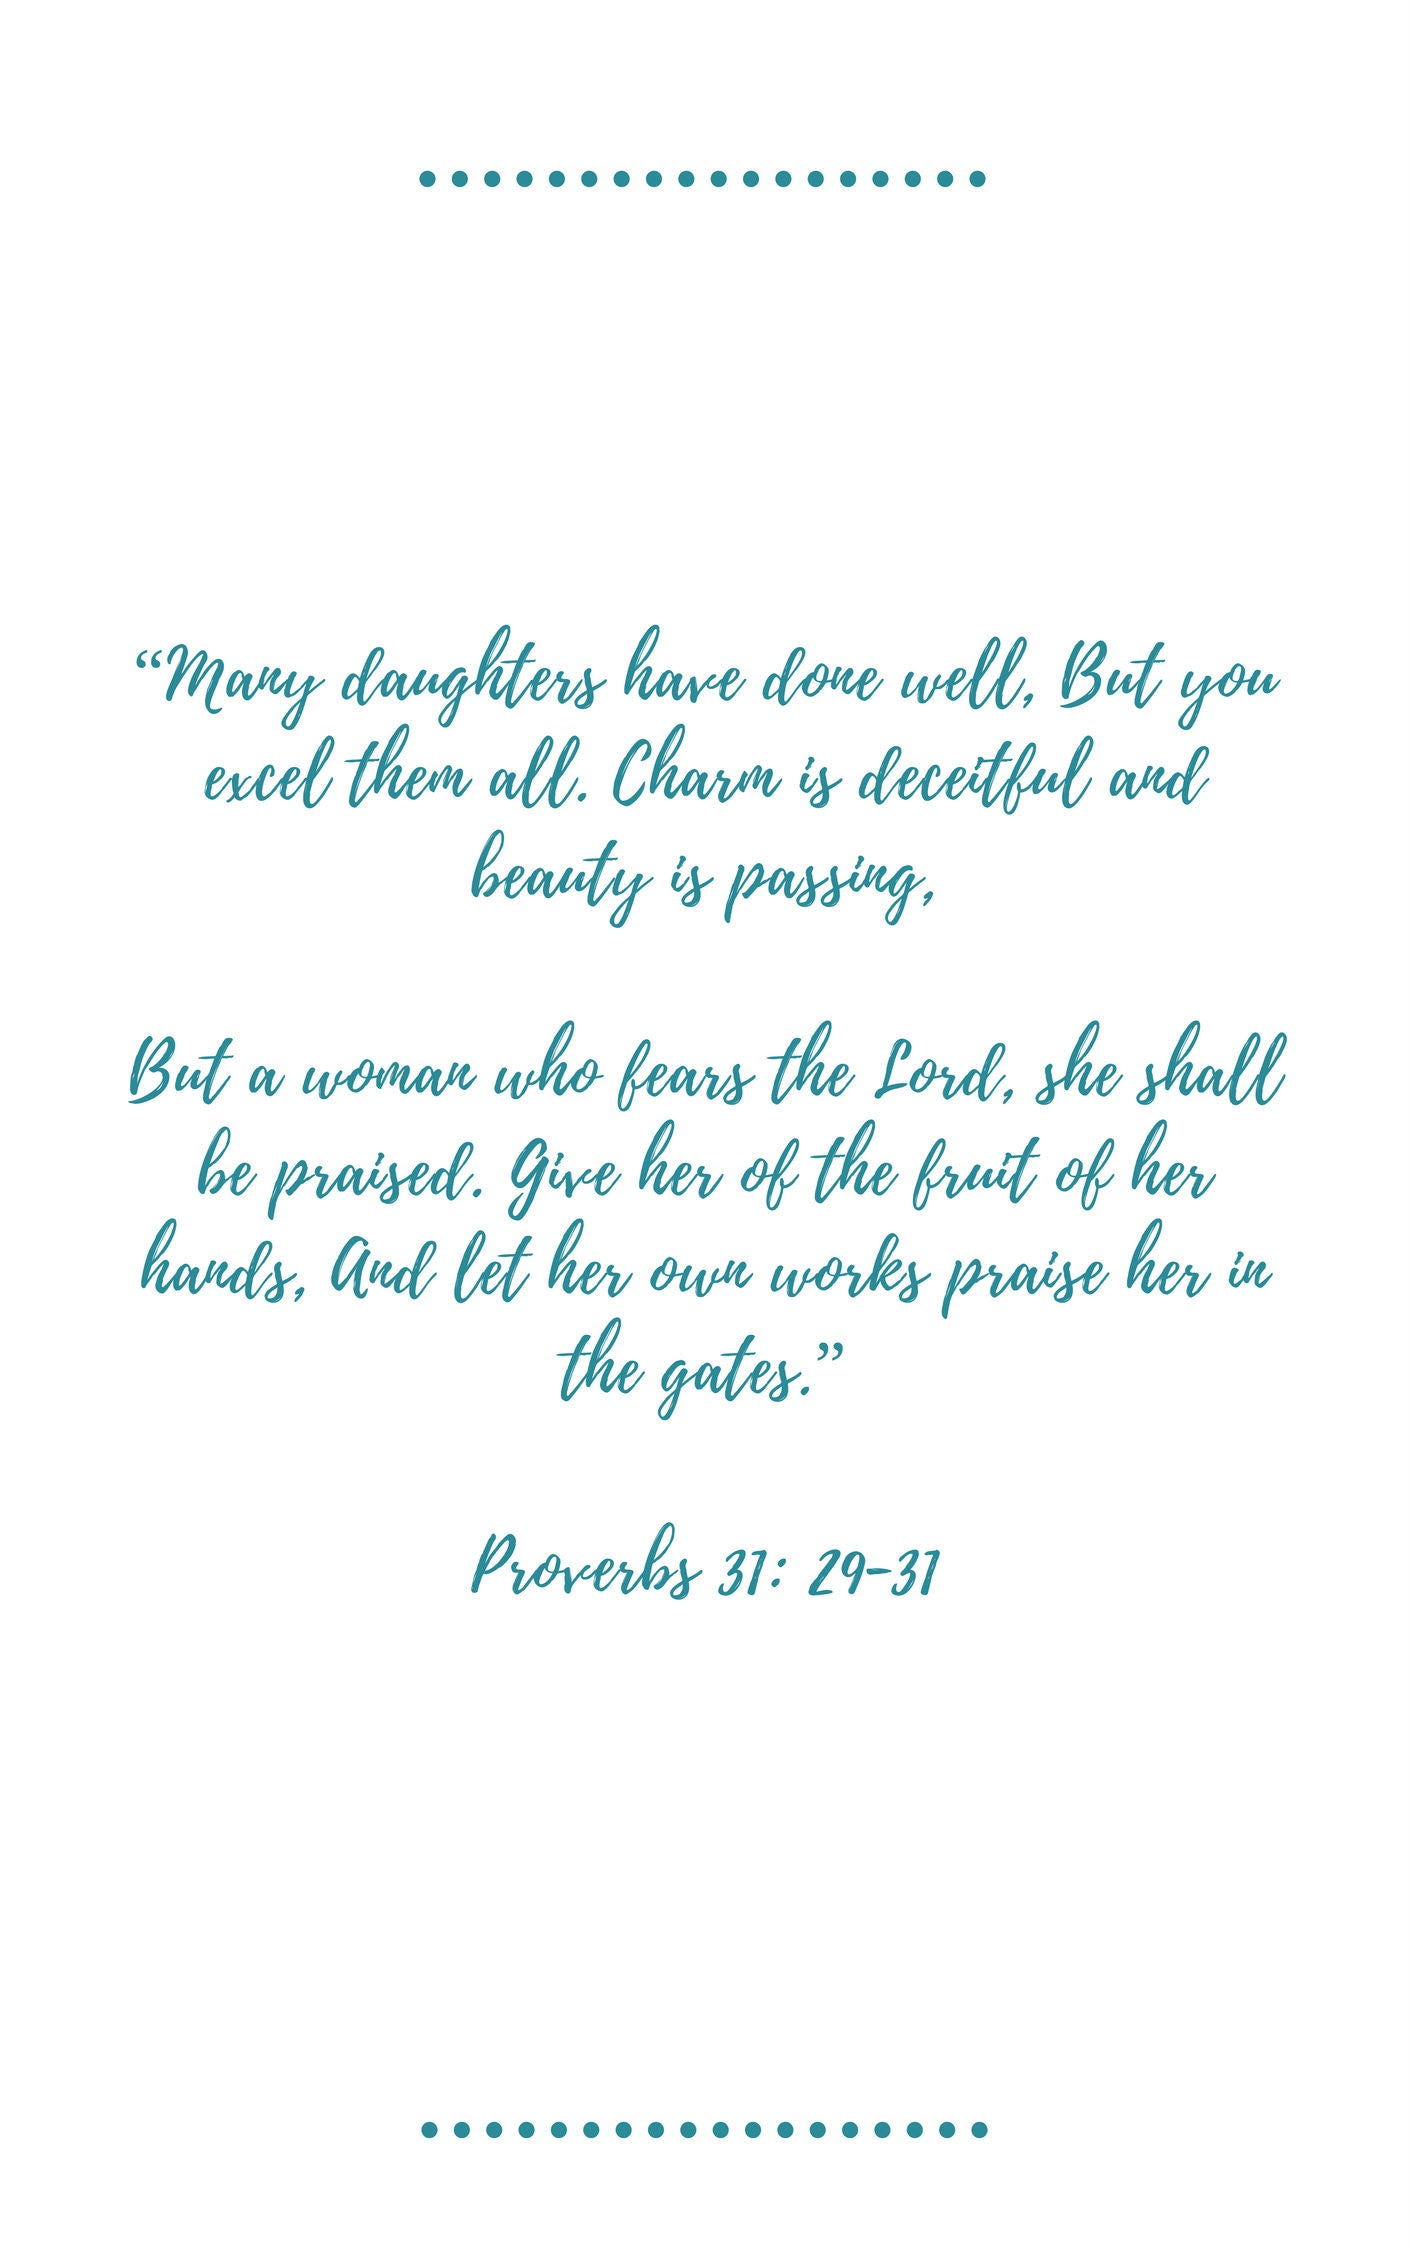 10 Virtues of the Proverbs 31 Woman by Melissa Ringstaff